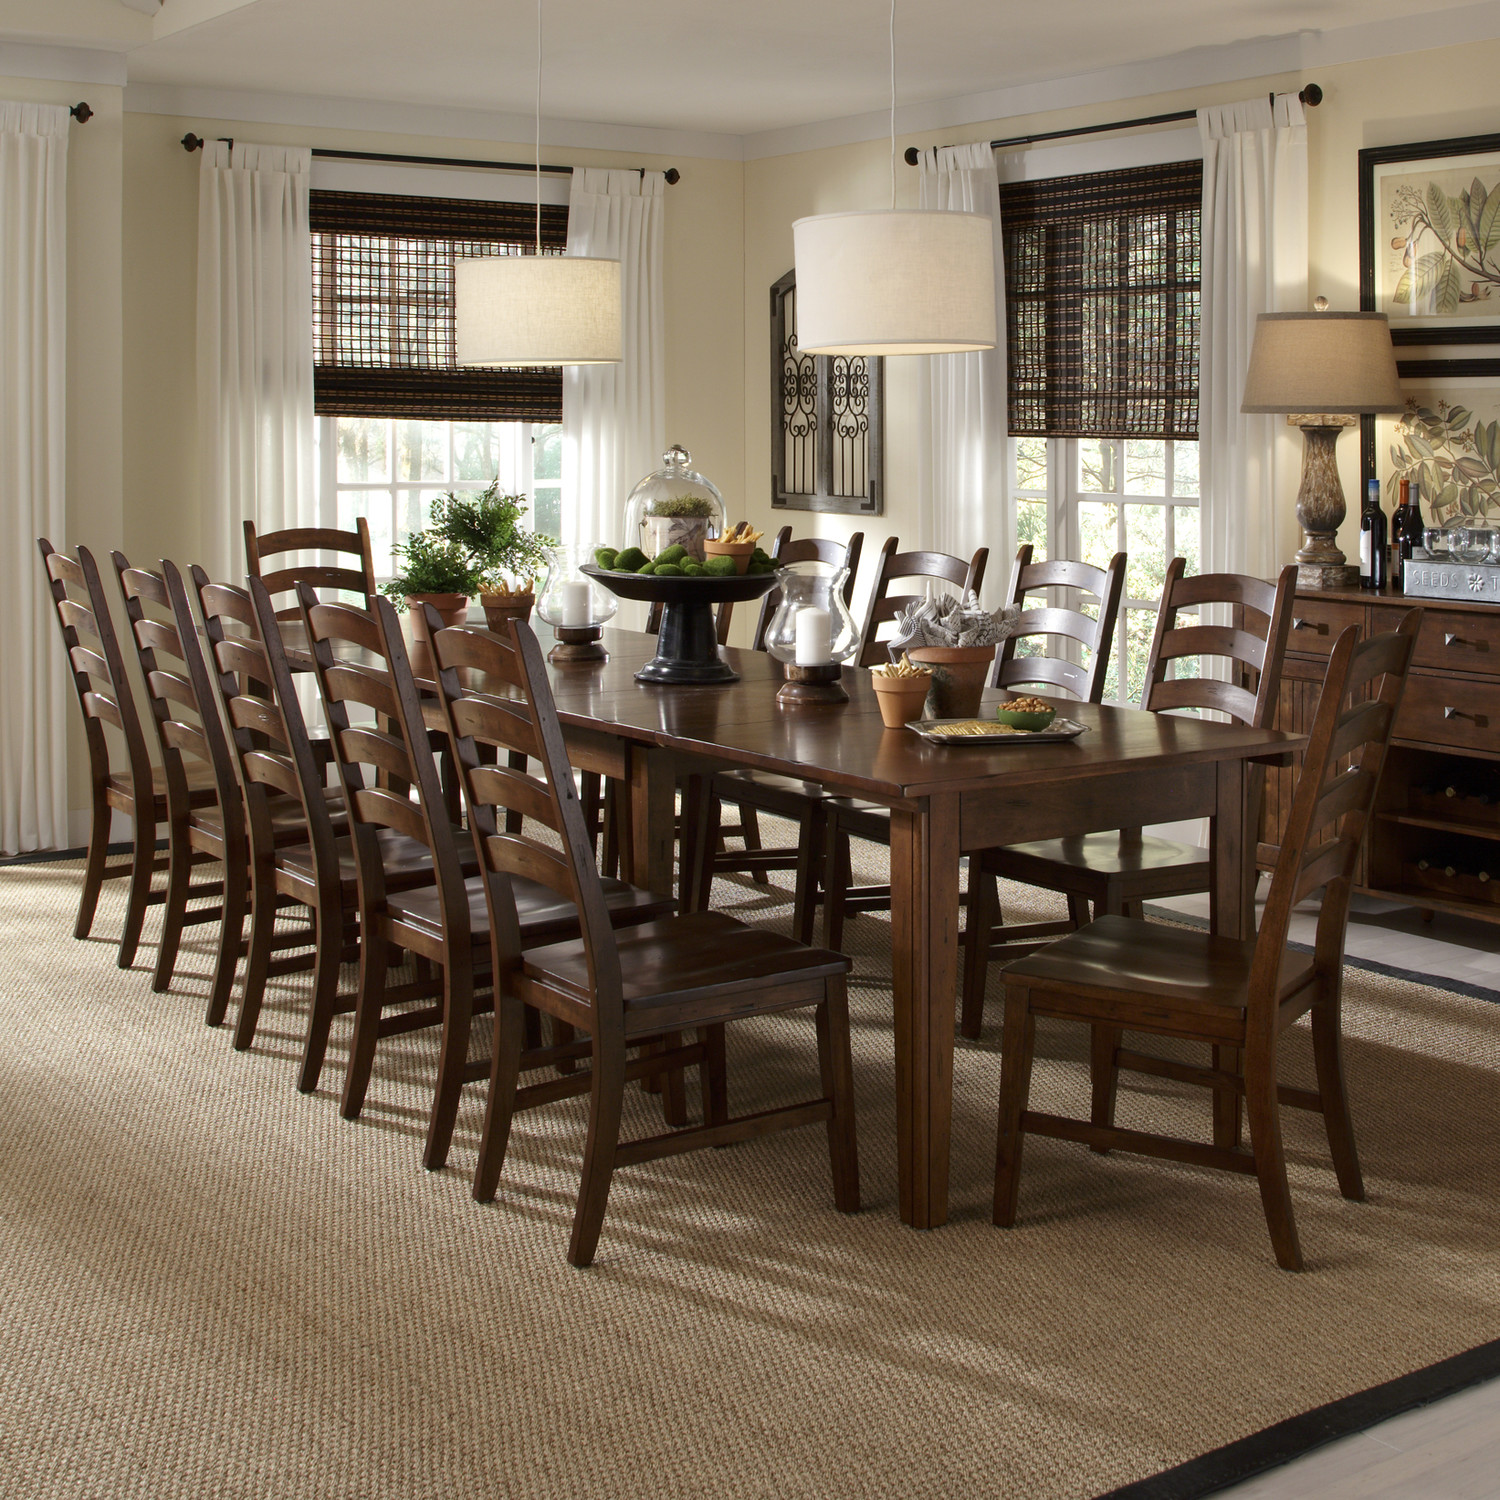 dining room sets with bench 11 piece dining room set homesfeed 504